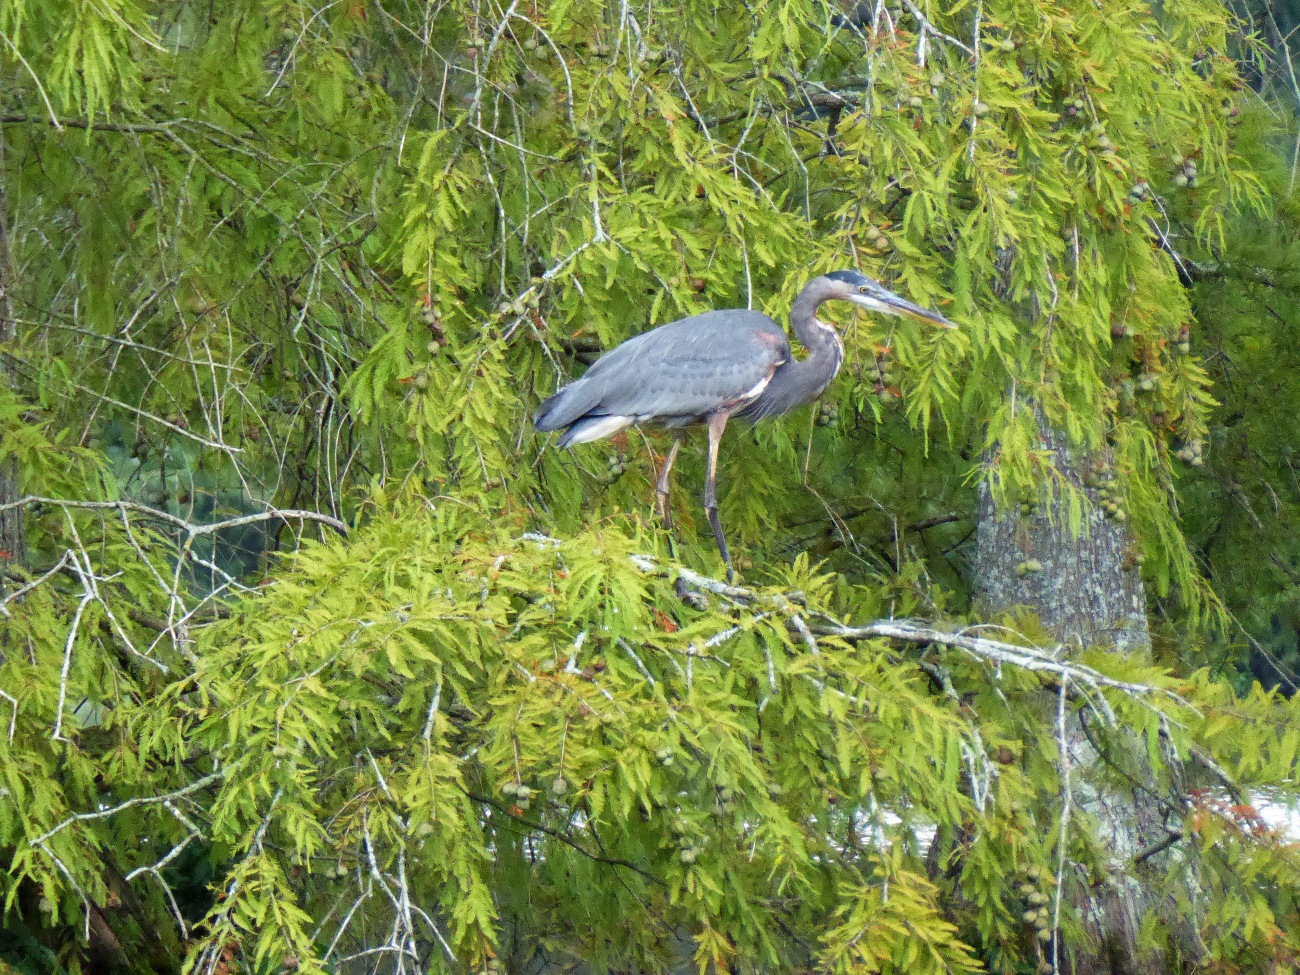 20170915_122743_Great Blue Heron in a Cypress Tree